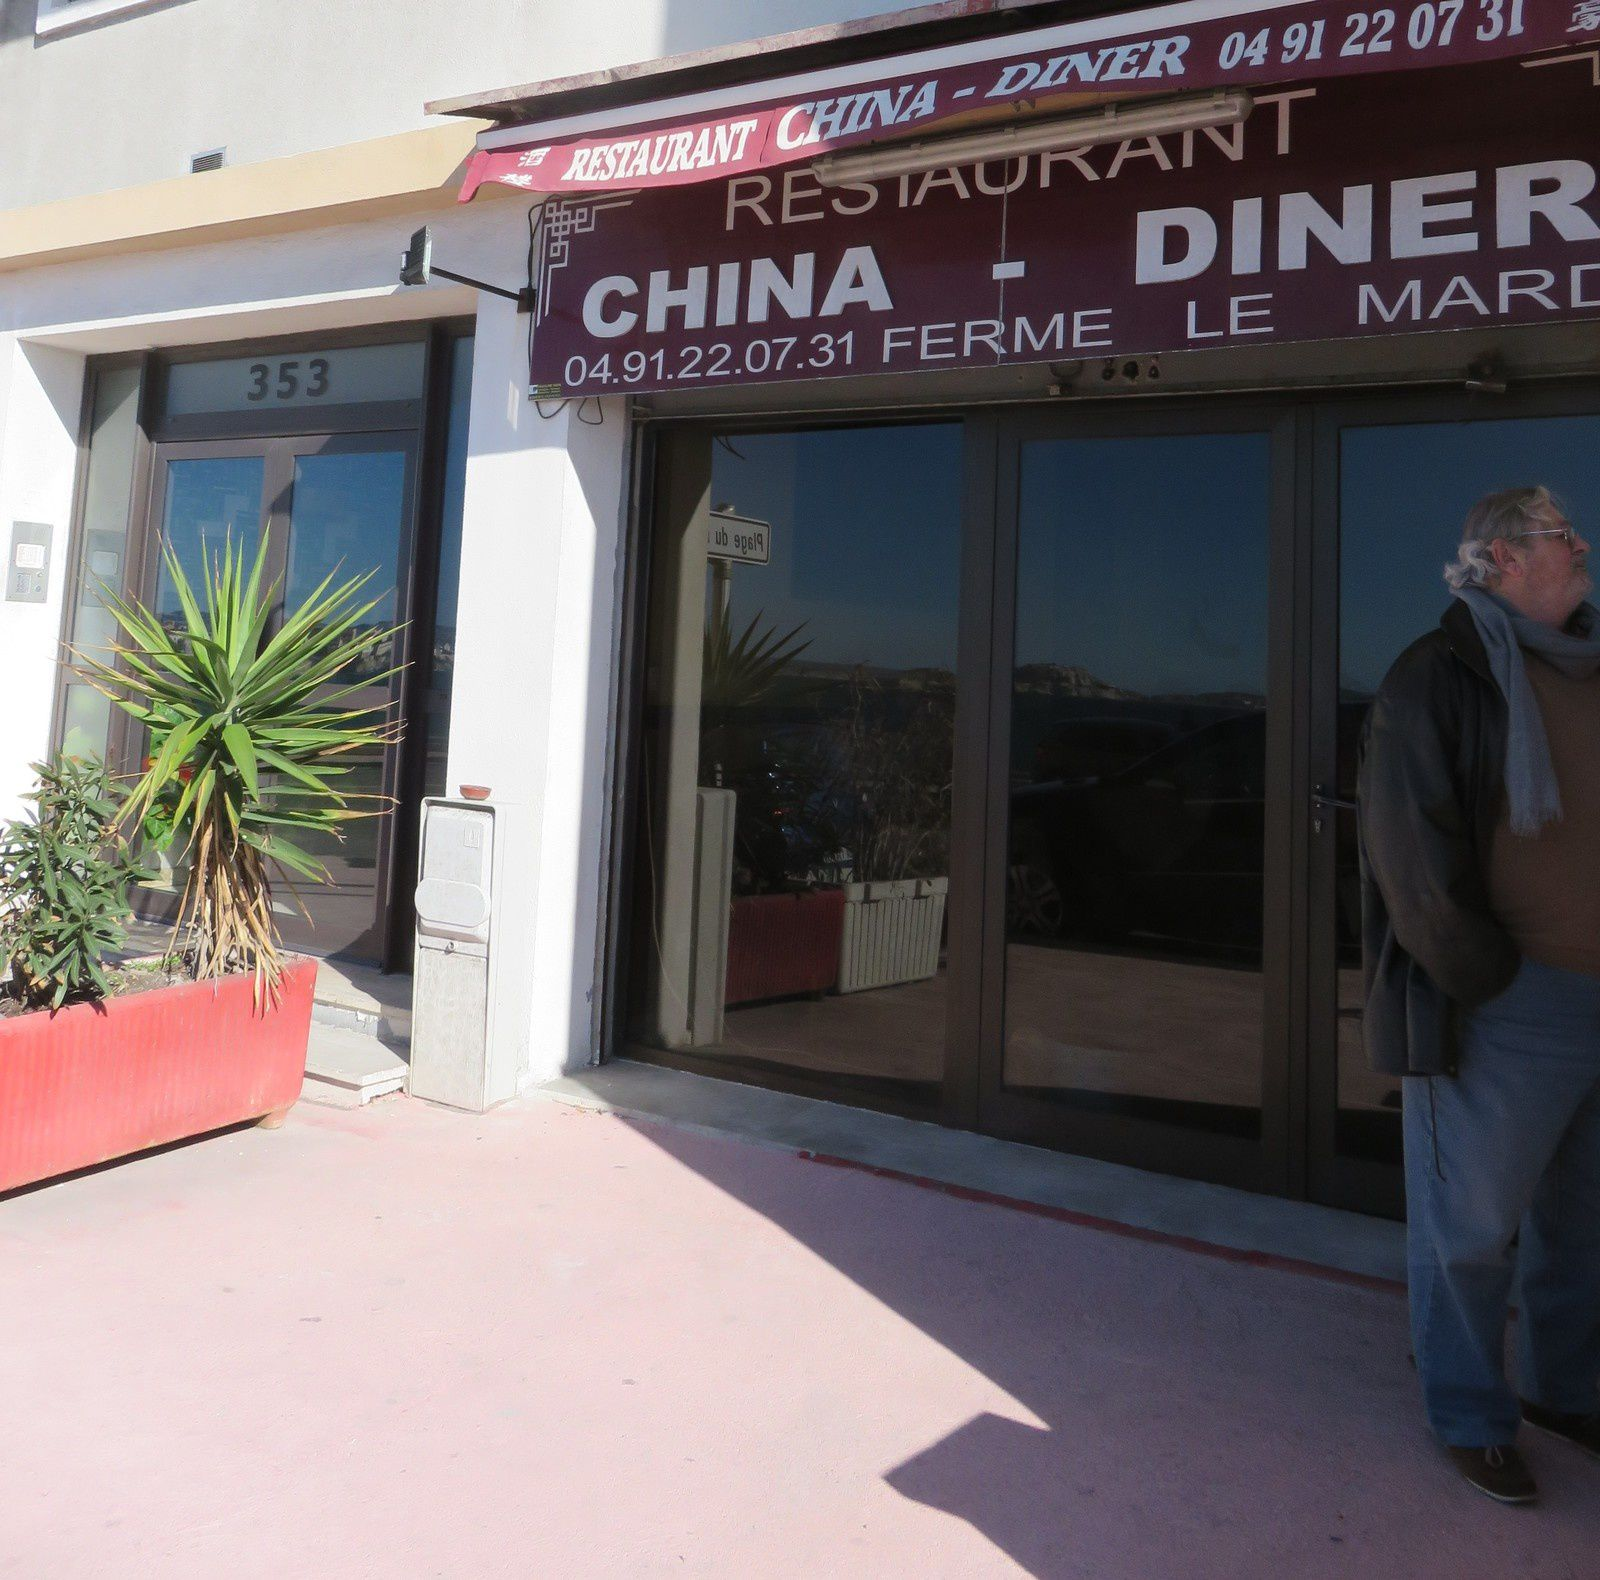 China-Diner 353 corniche Kennedy 13007 Marseille - Tél : 04 91 22 07 31